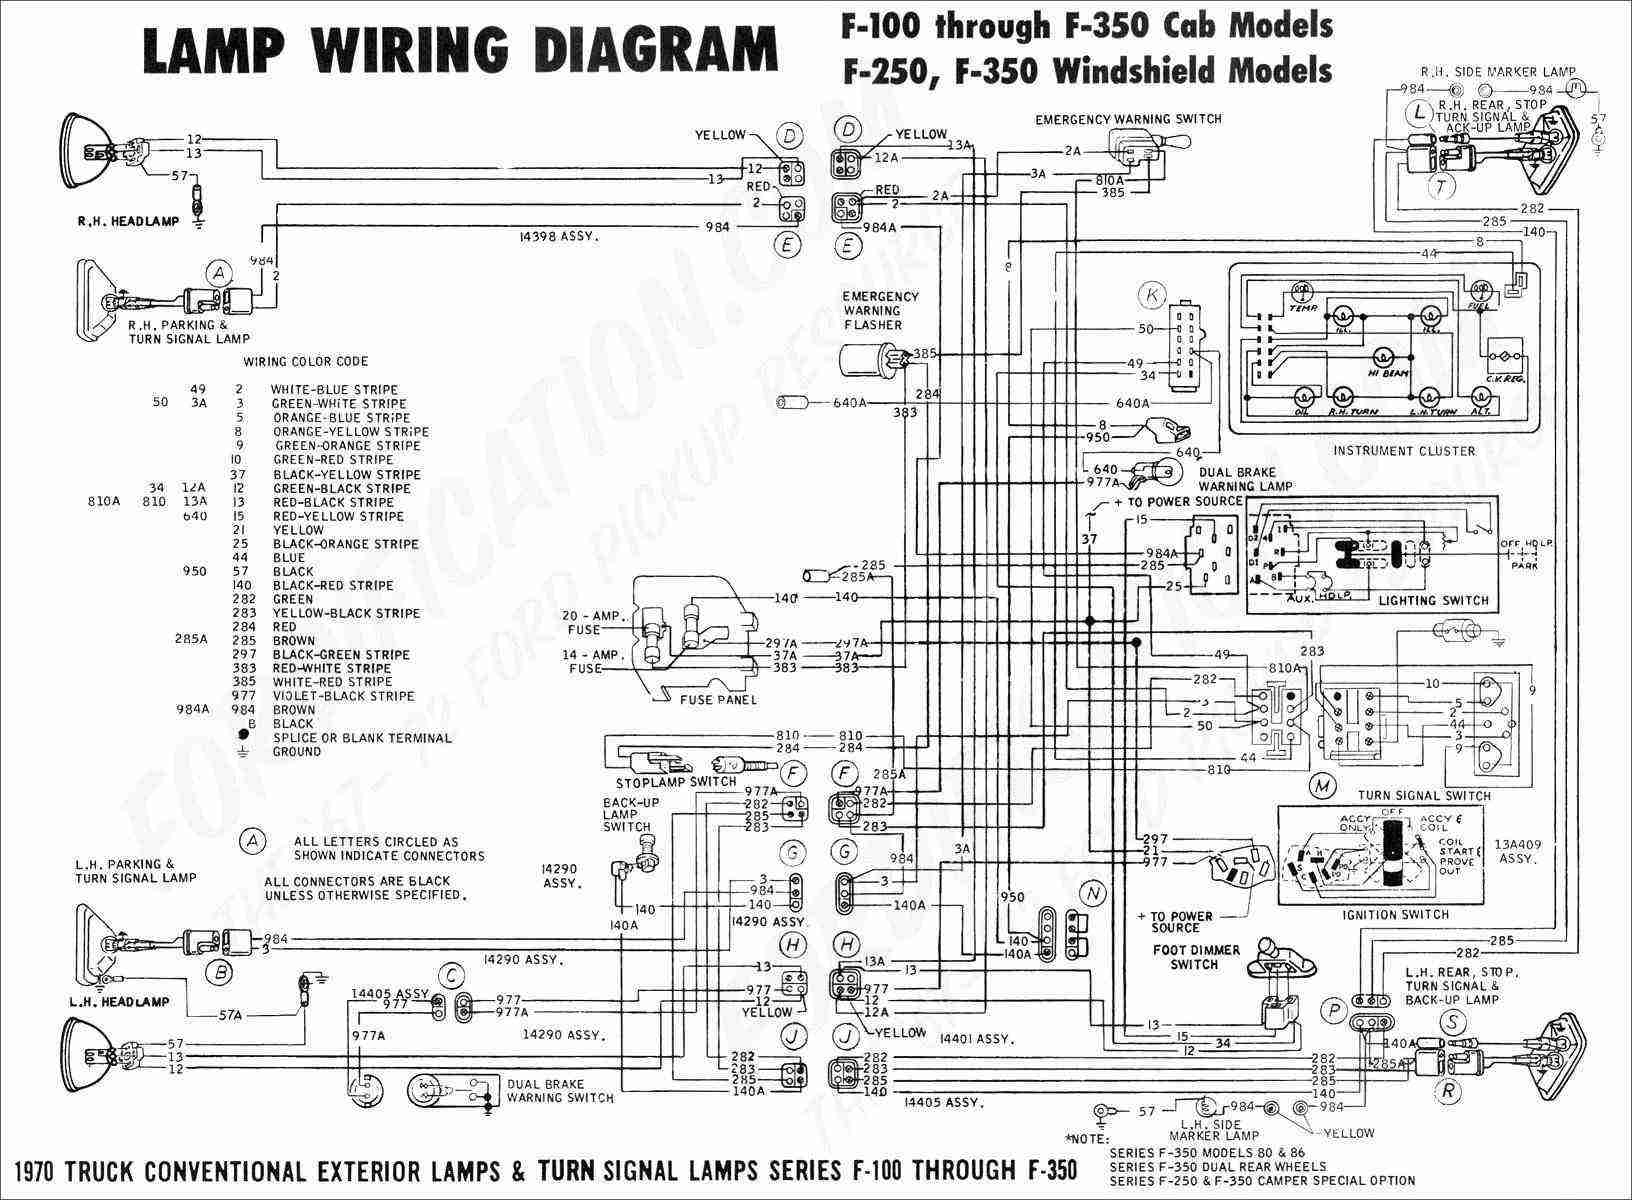 Dodge Ram Wiring Diagram 2006 | Wiring Diagram - 2006 Dodge Ram Trailer Wiring Diagram